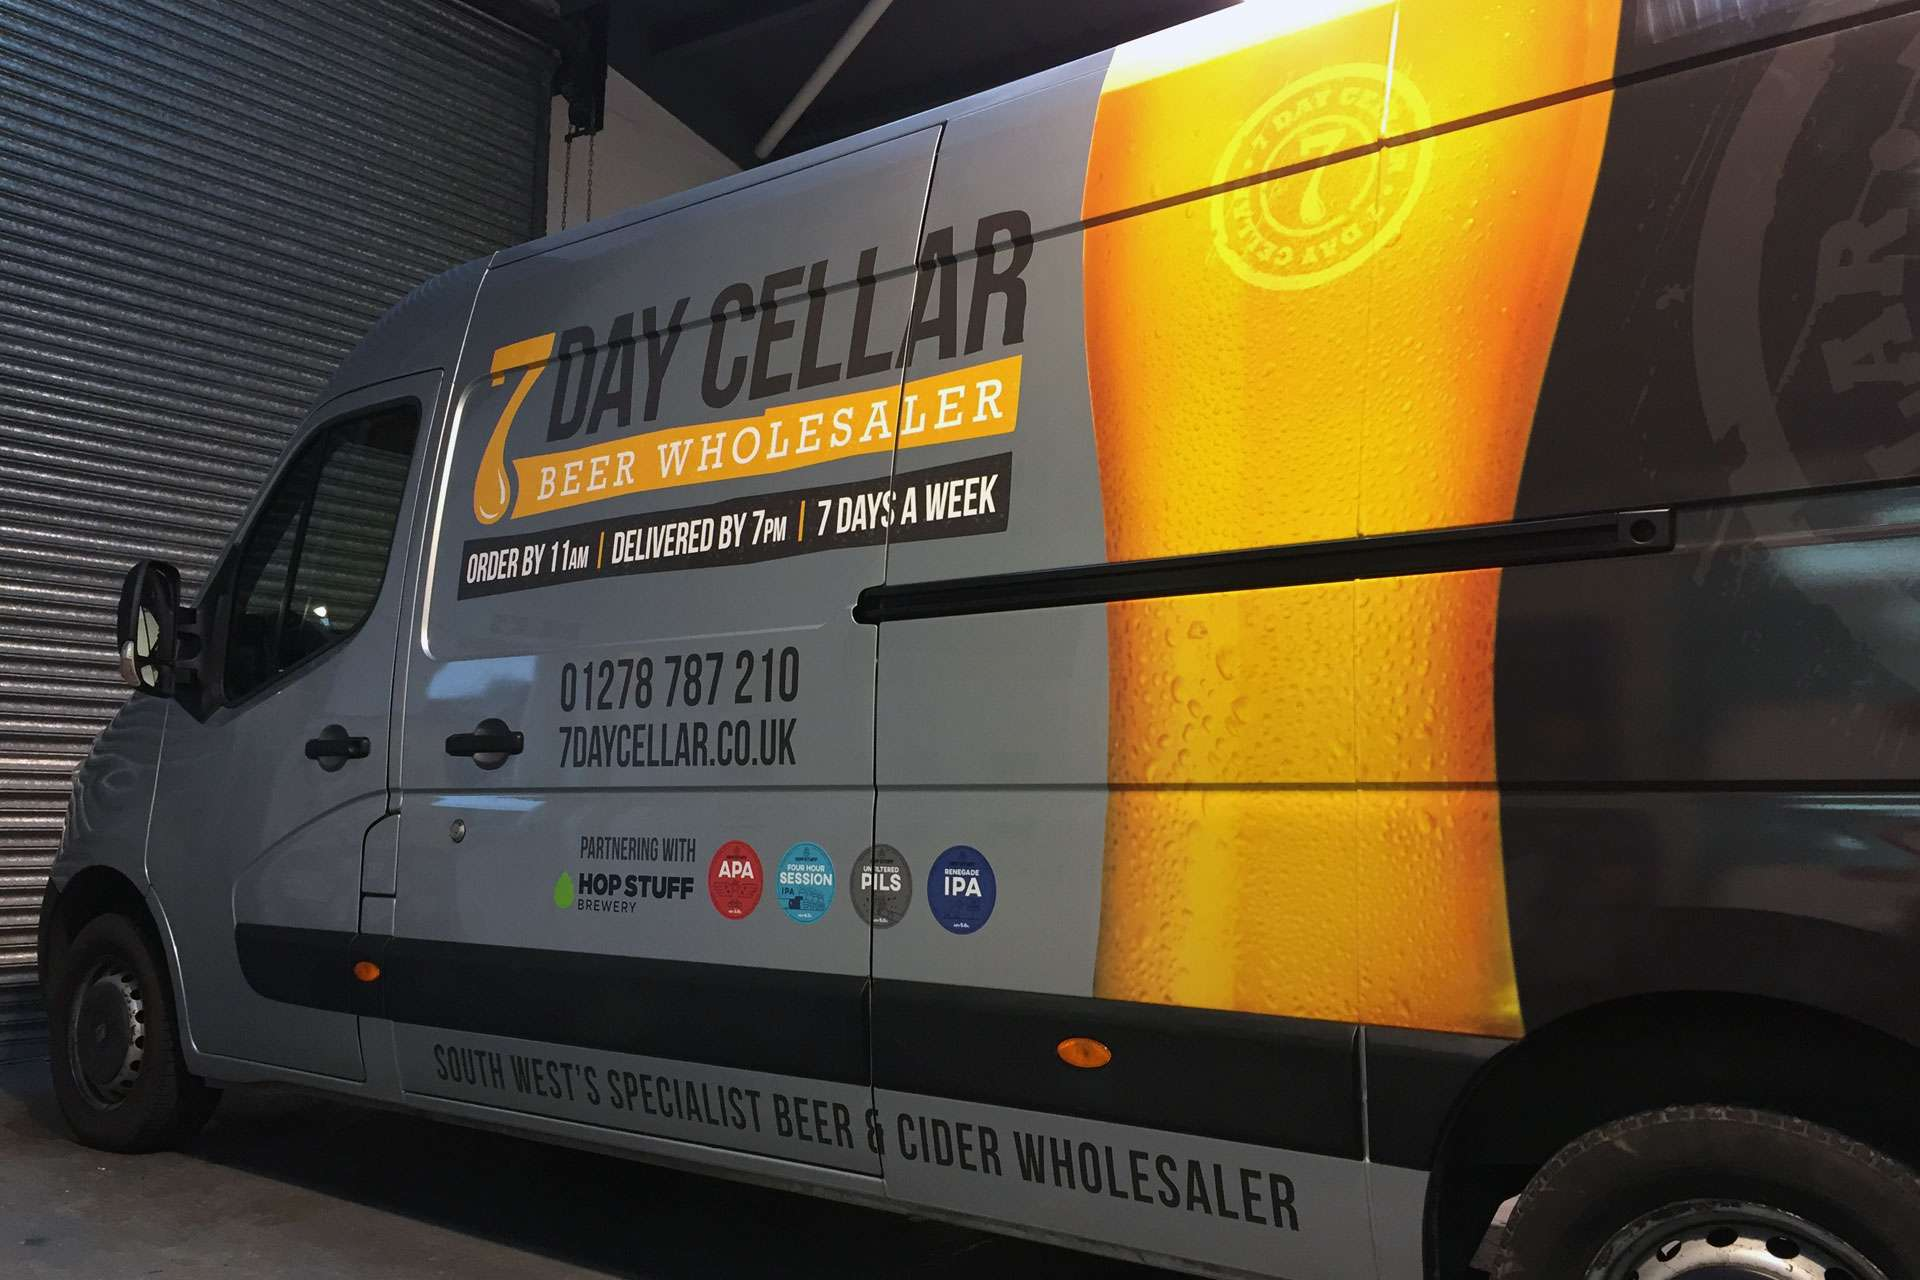 7 Day Cellar vehicle livery design, Highbridge, Somerset Branding